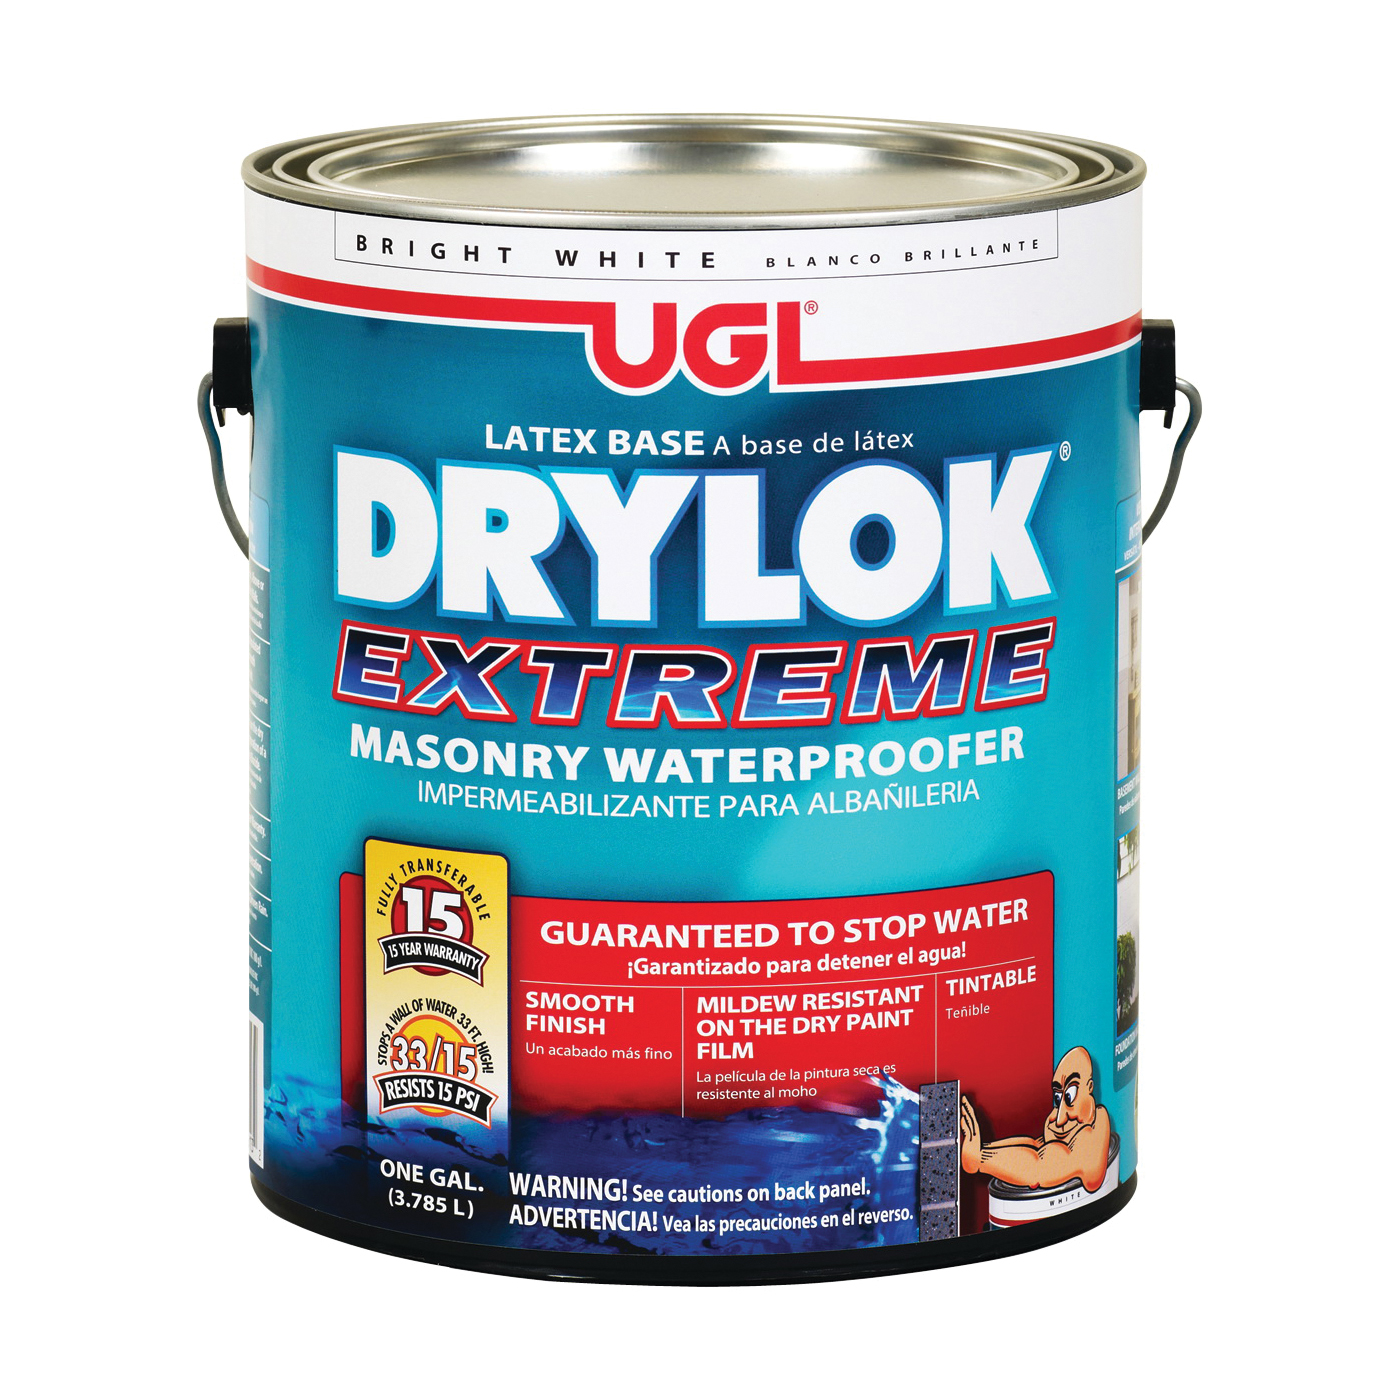 Picture of UGL DRYLOK EXTREME 28613 Masonry Waterproofer, White, Liquid, 1 gal Package, Pail